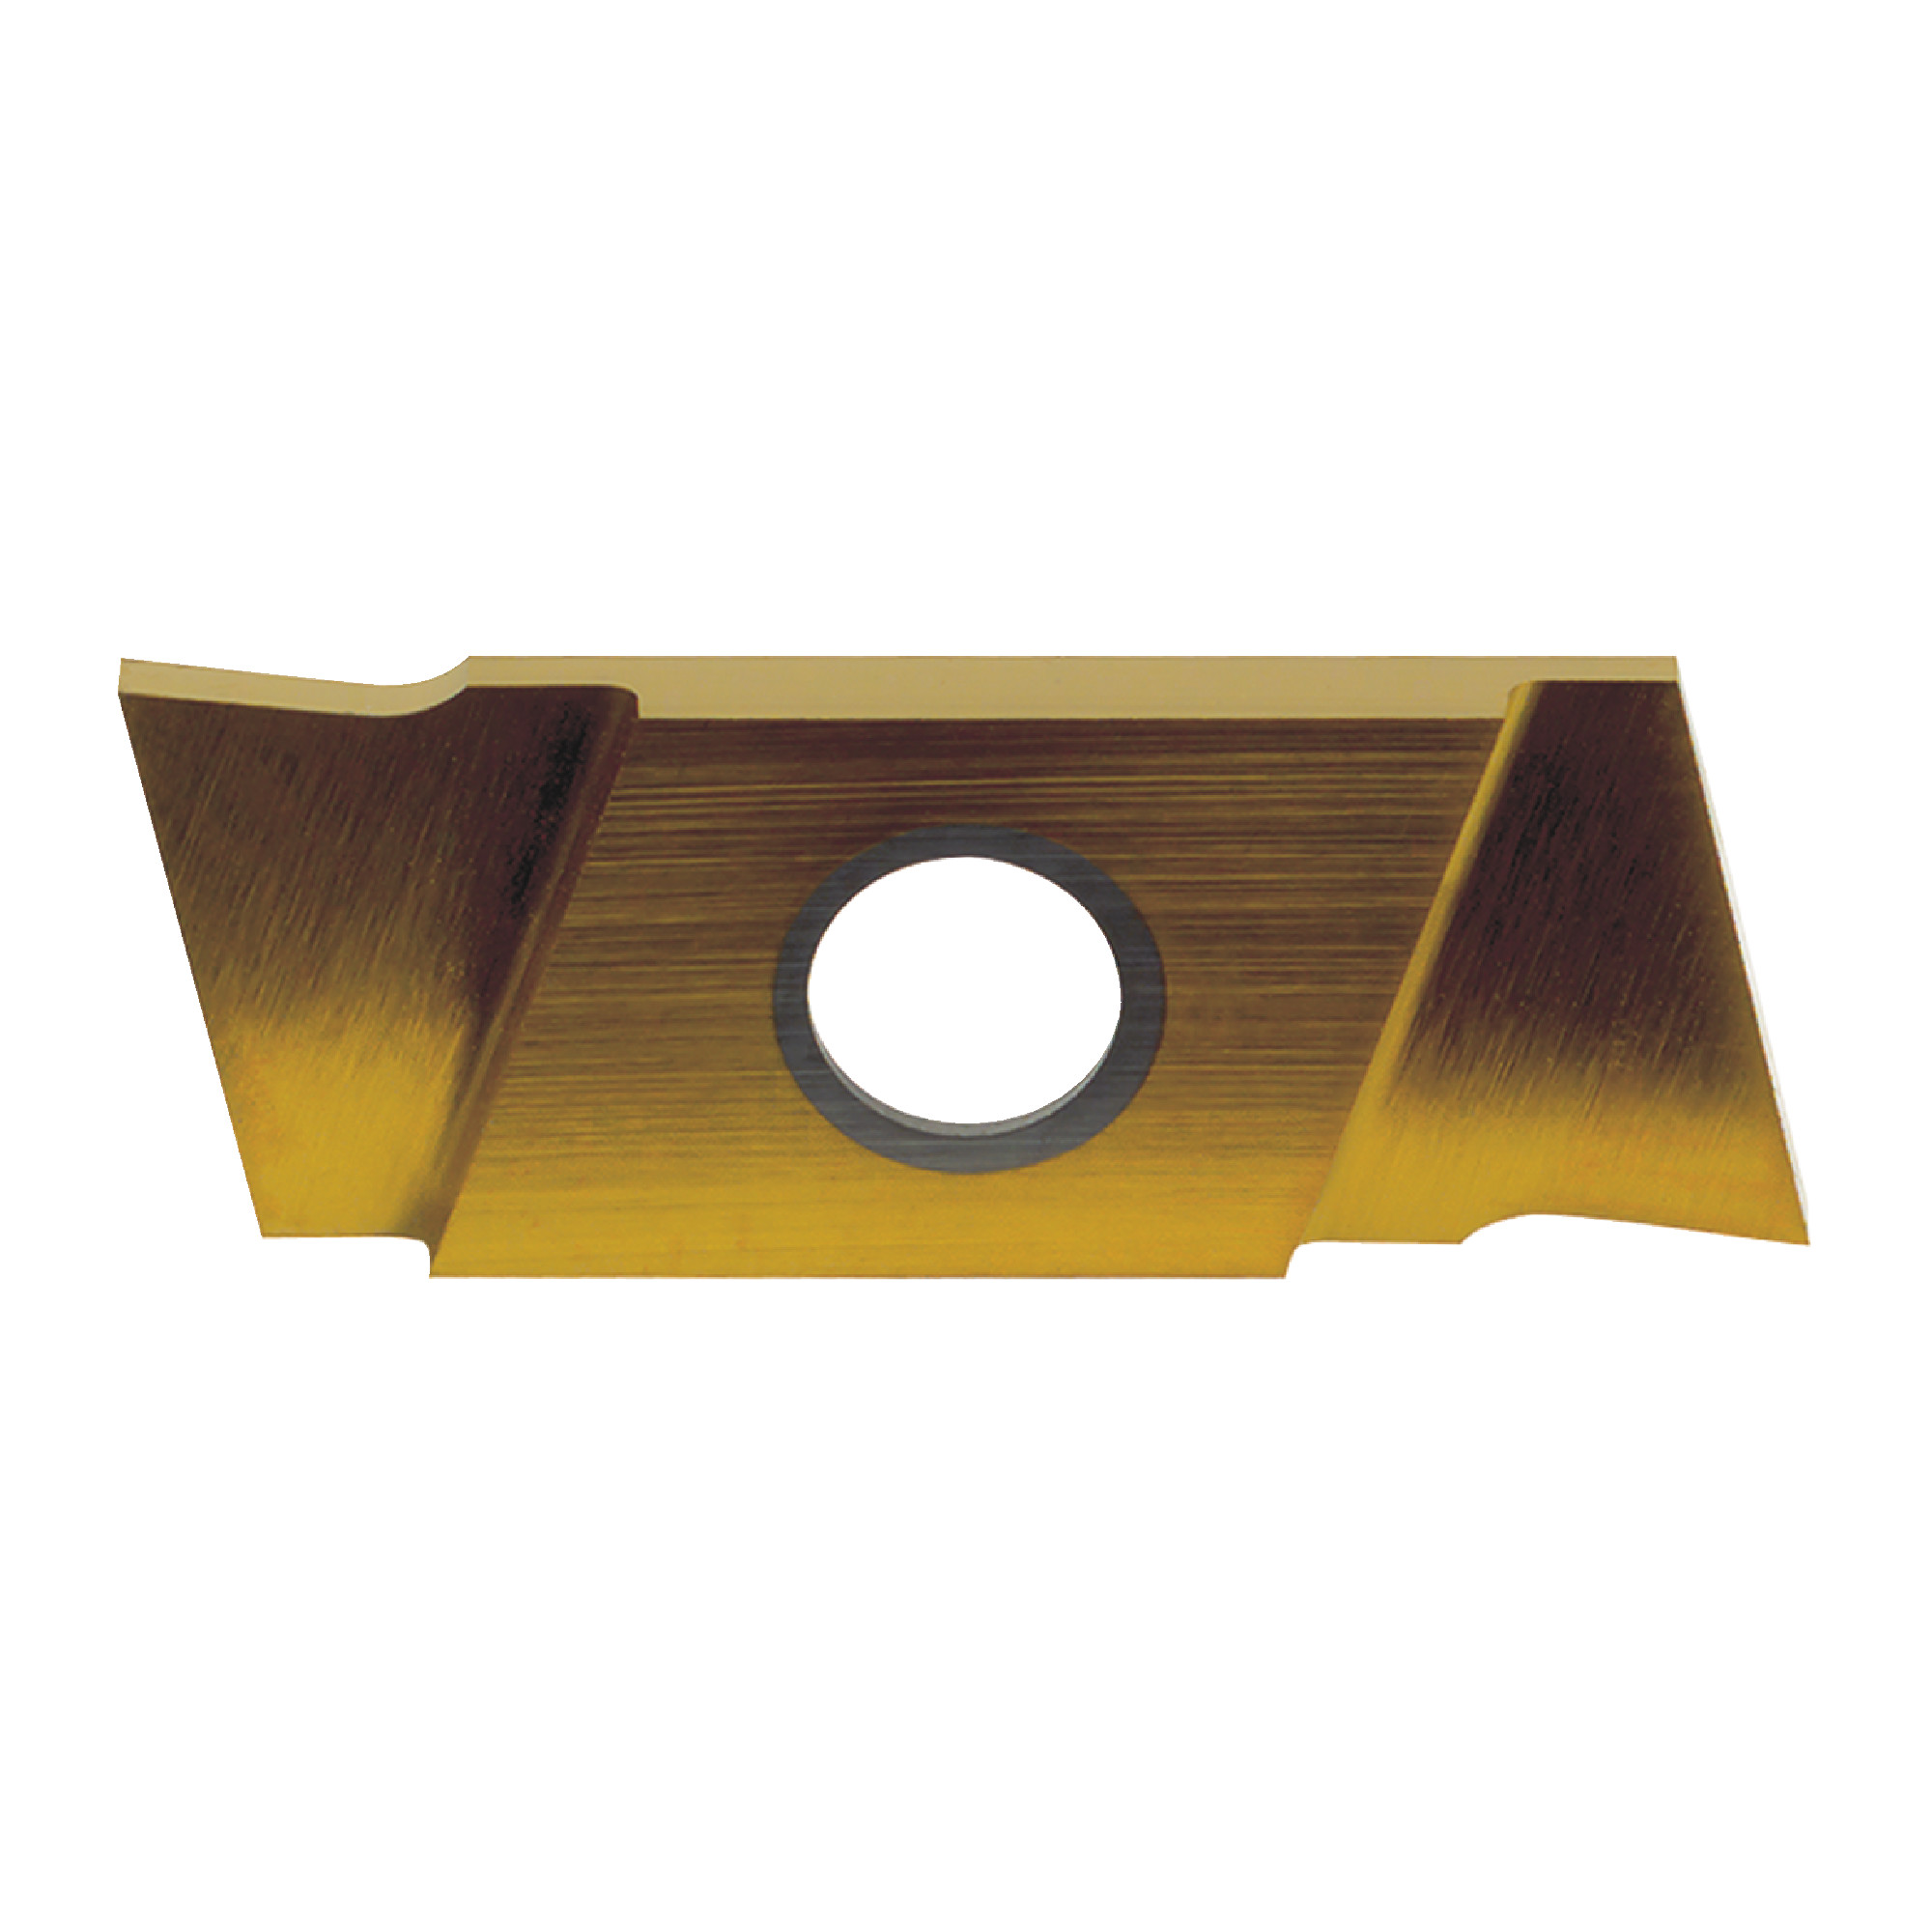 """NIKCOLE - GIE-7-GP-1.0LL C5-PV / Indexable Carbide Insert for Grooving & Parting / 0.039"""" Cutting Width / Left Hand"""